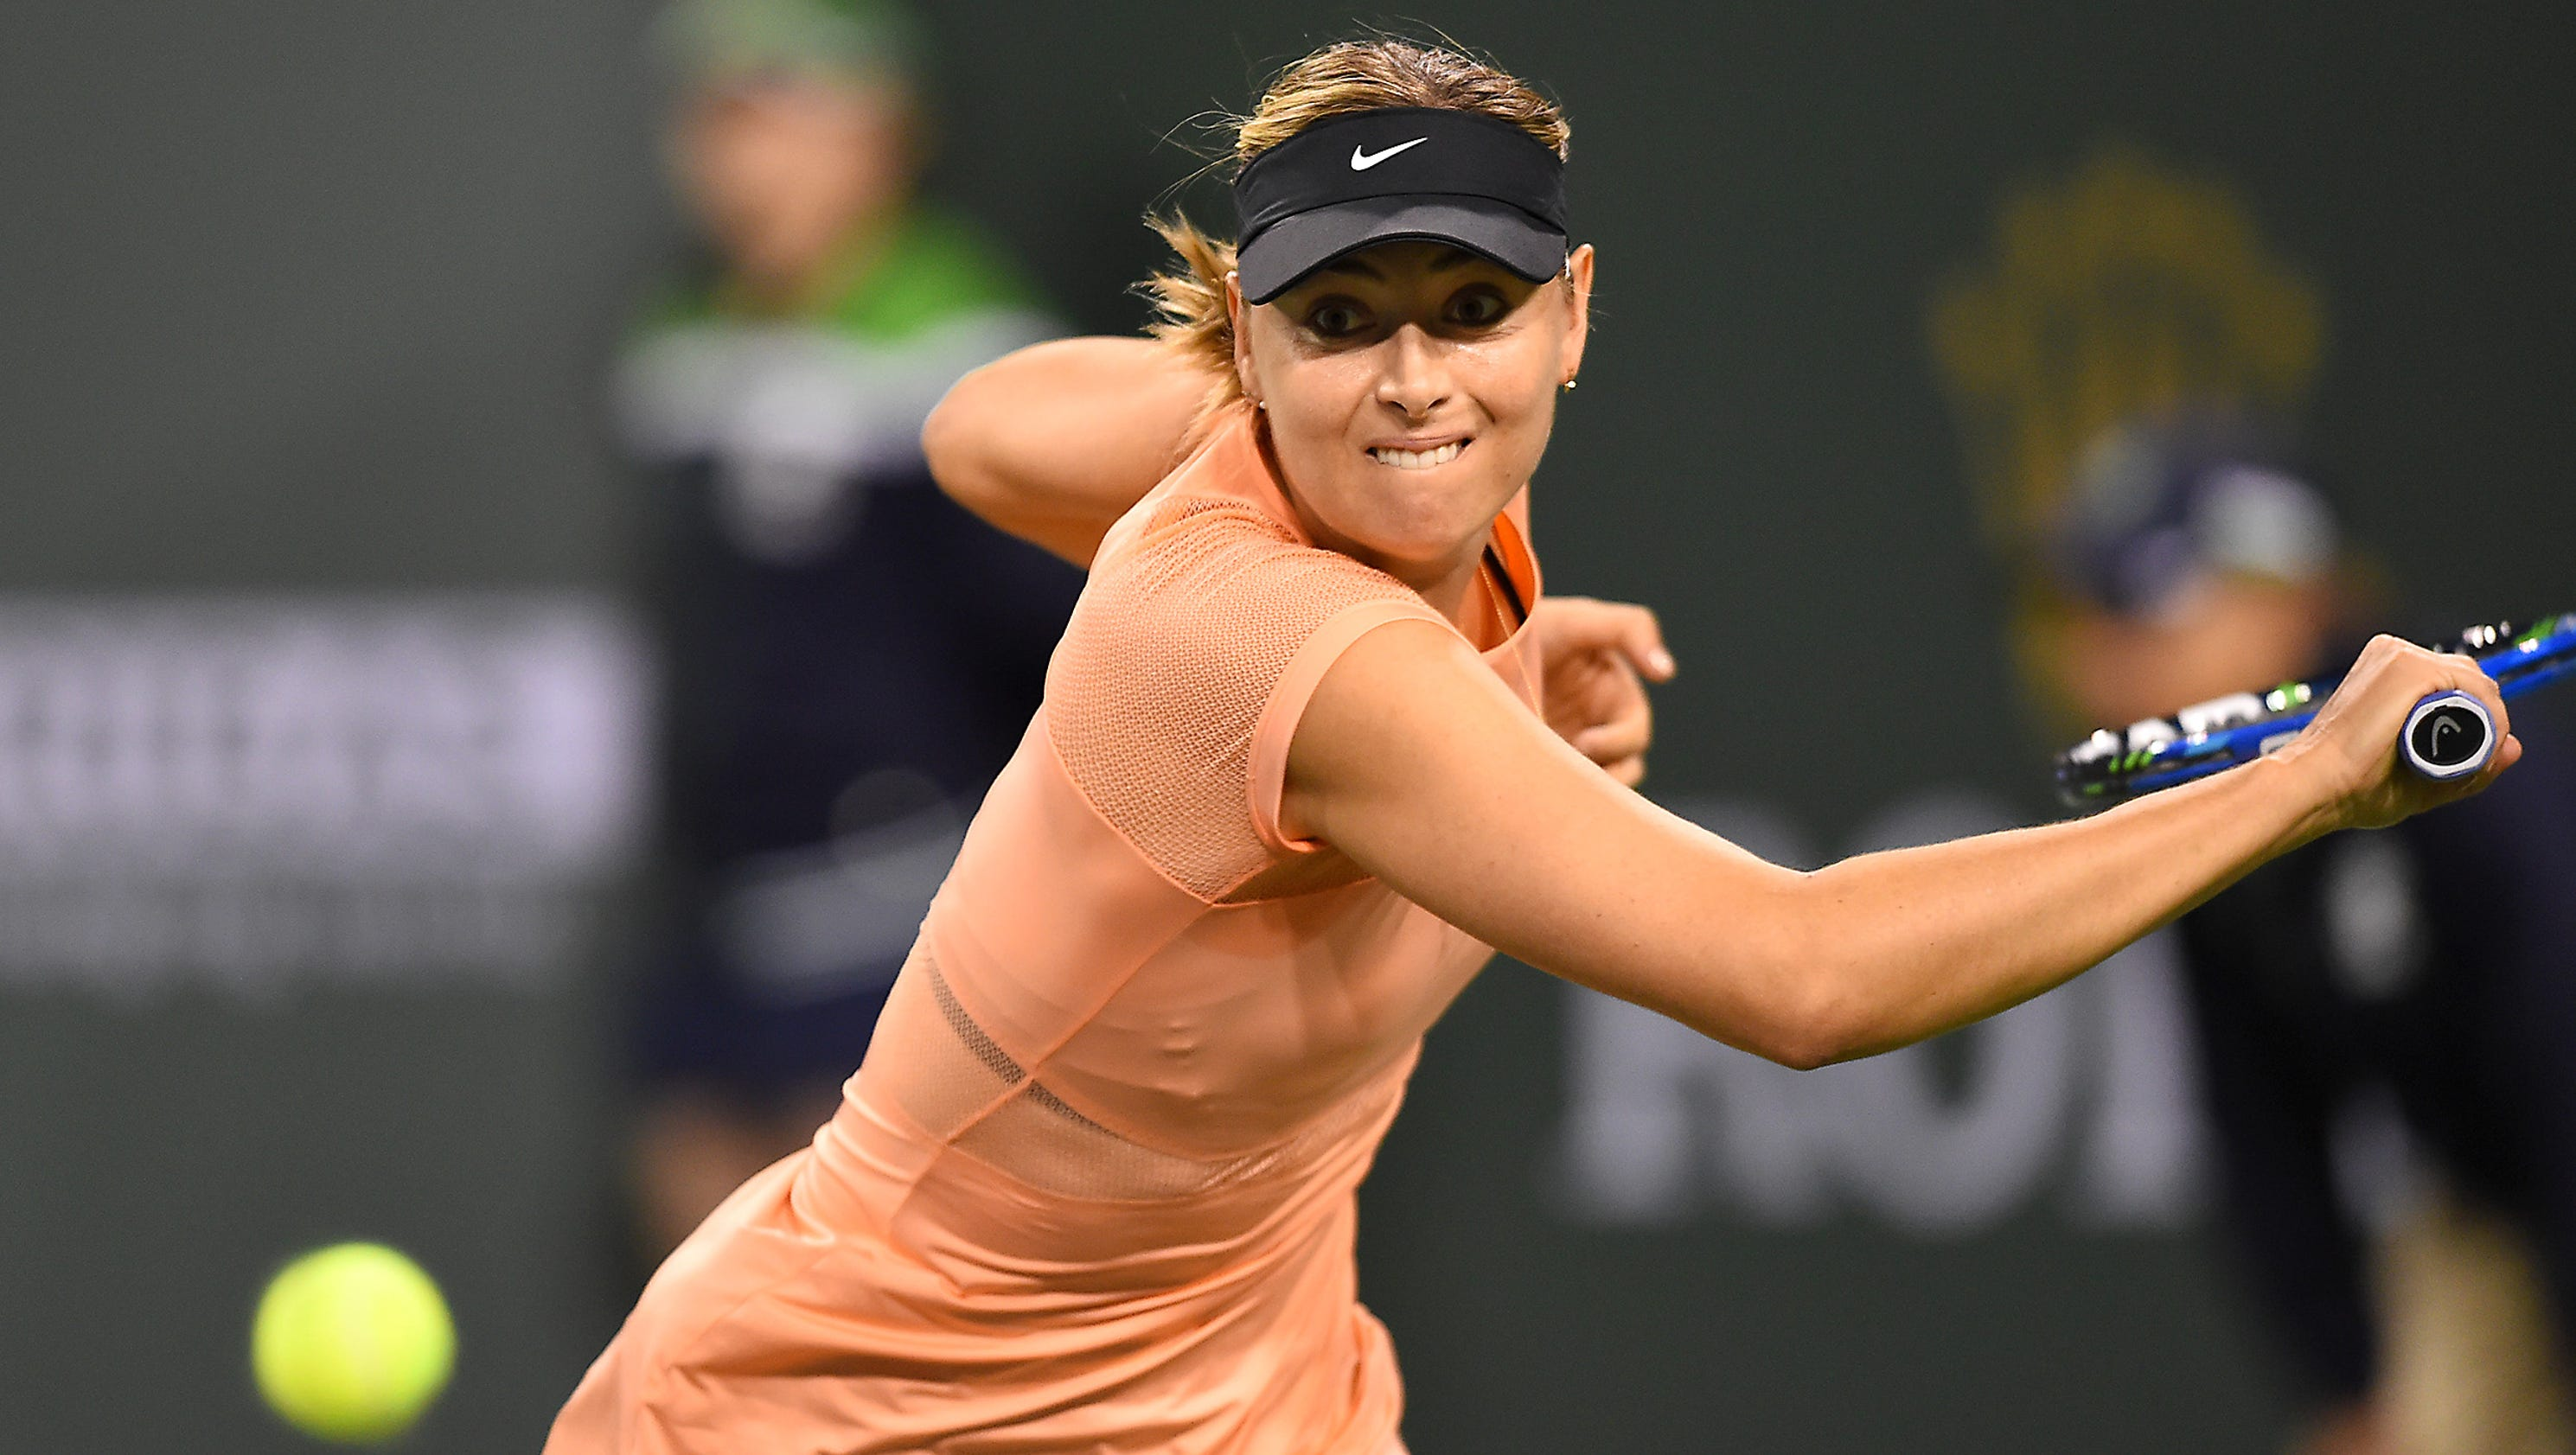 Maria Sharapova snaps back at disappointed fan on Twitter